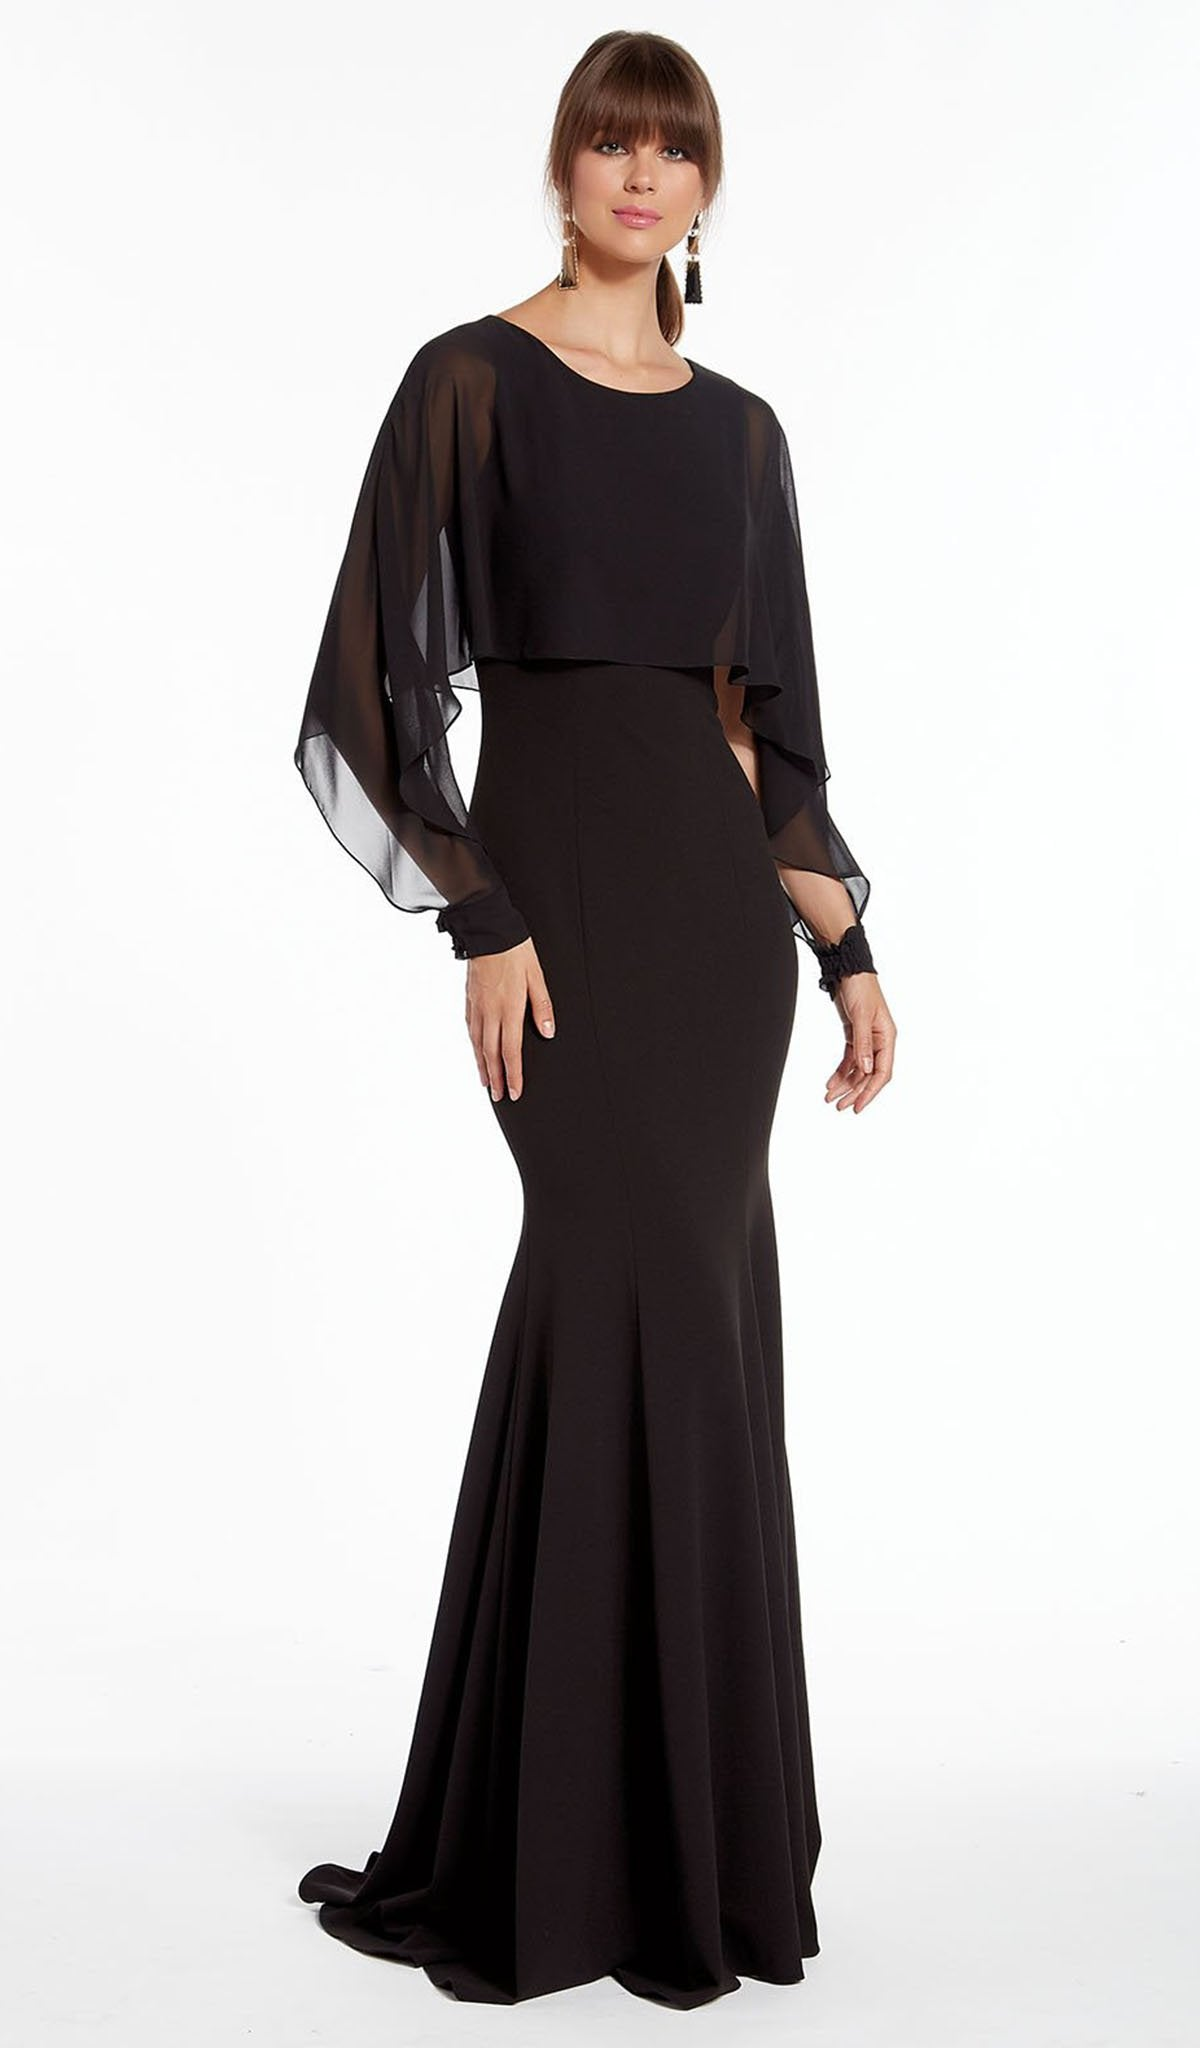 Alyce Paris - 27294 Split Long Sleeve Caped Trumpet Gown Special Occasion Dress 000 / Black